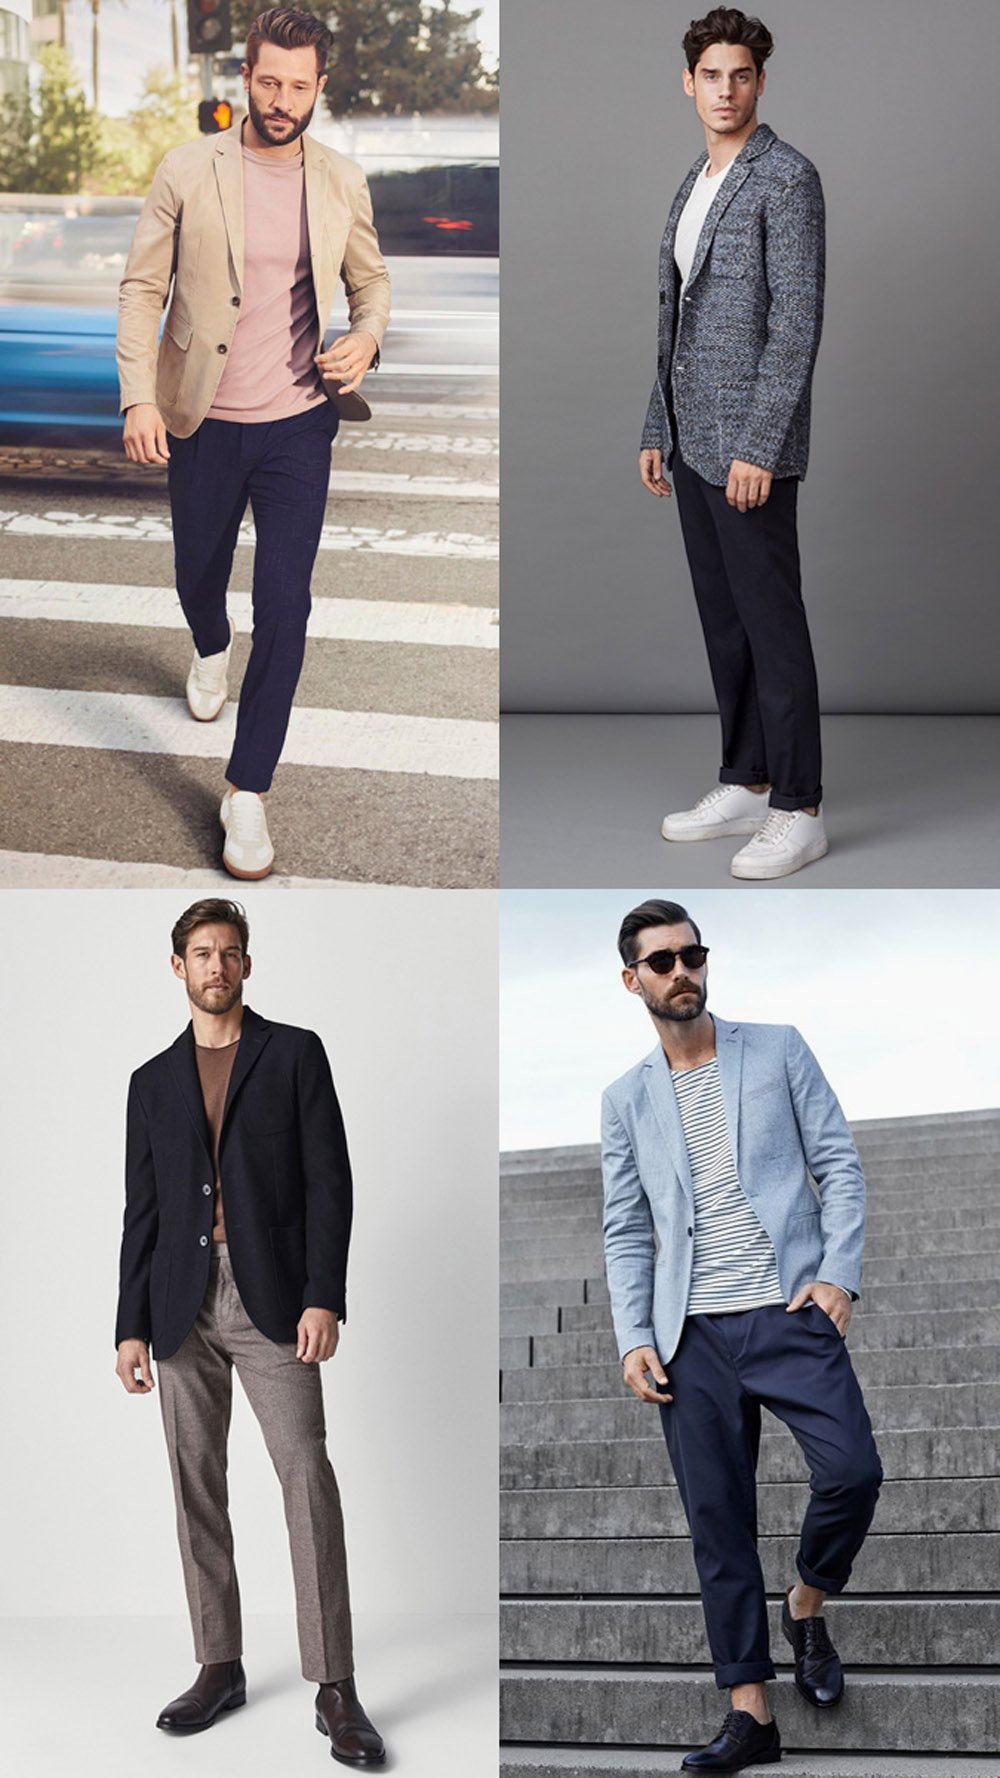 awww.arrajol.com_sites_default_files_2018_03_16_181921_Unstructured_20Blazer.